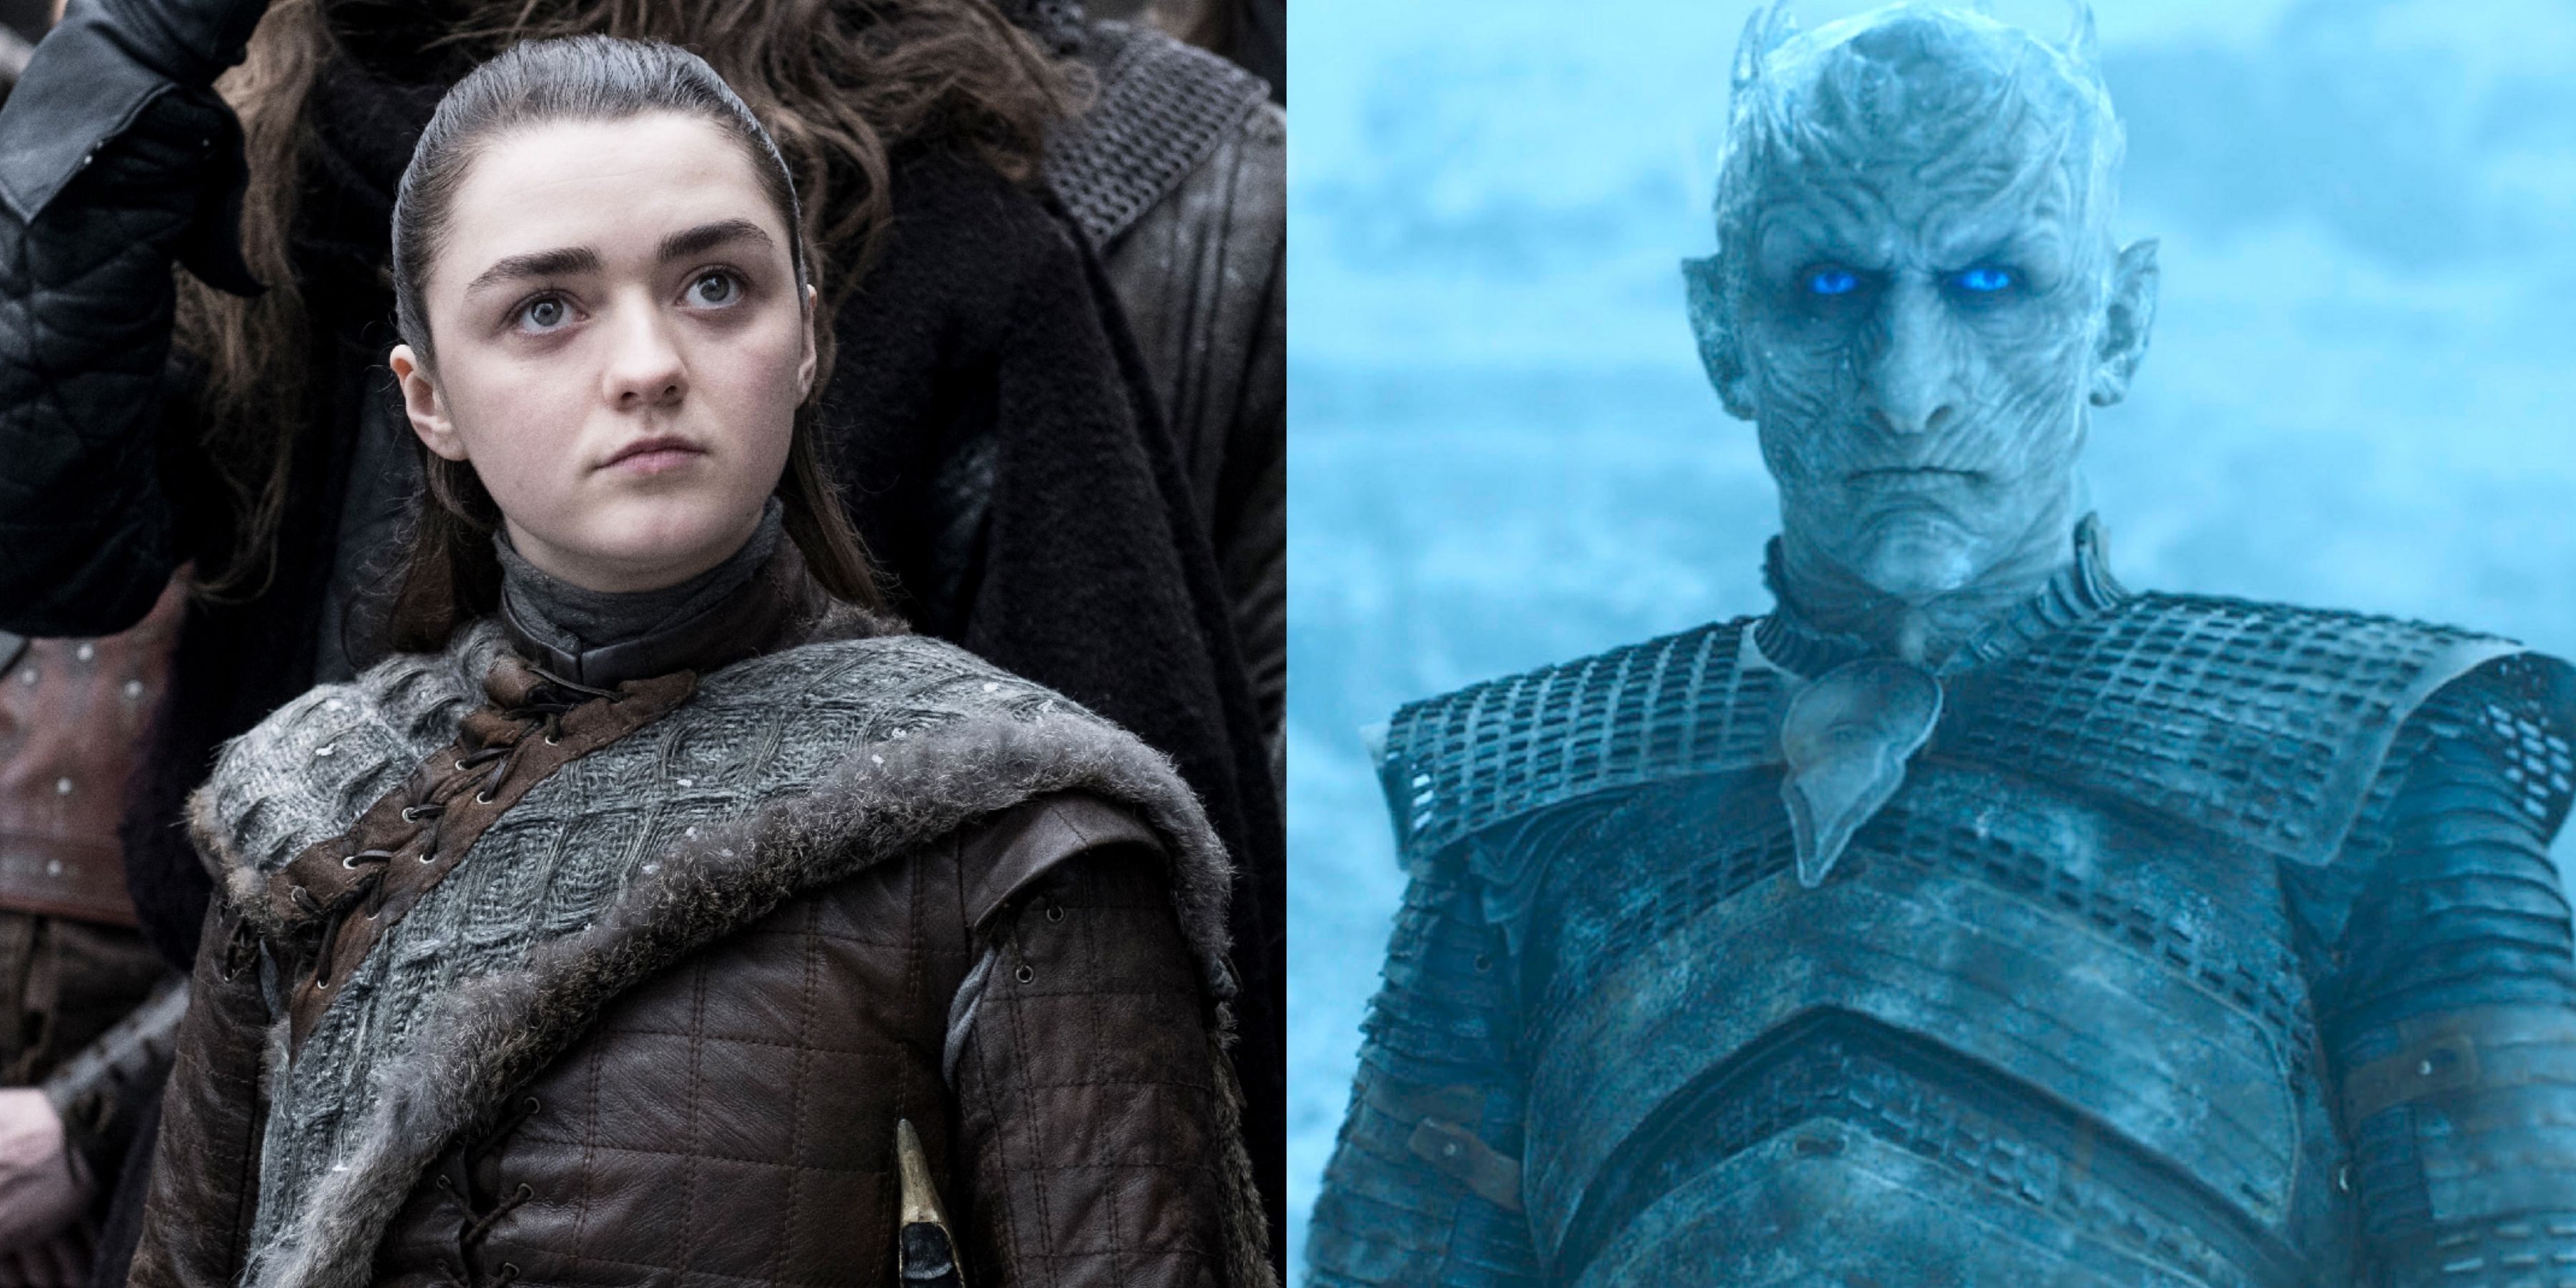 This Game of Thrones Theory Says Arya's Next Disguise Will Help Kill the Night King